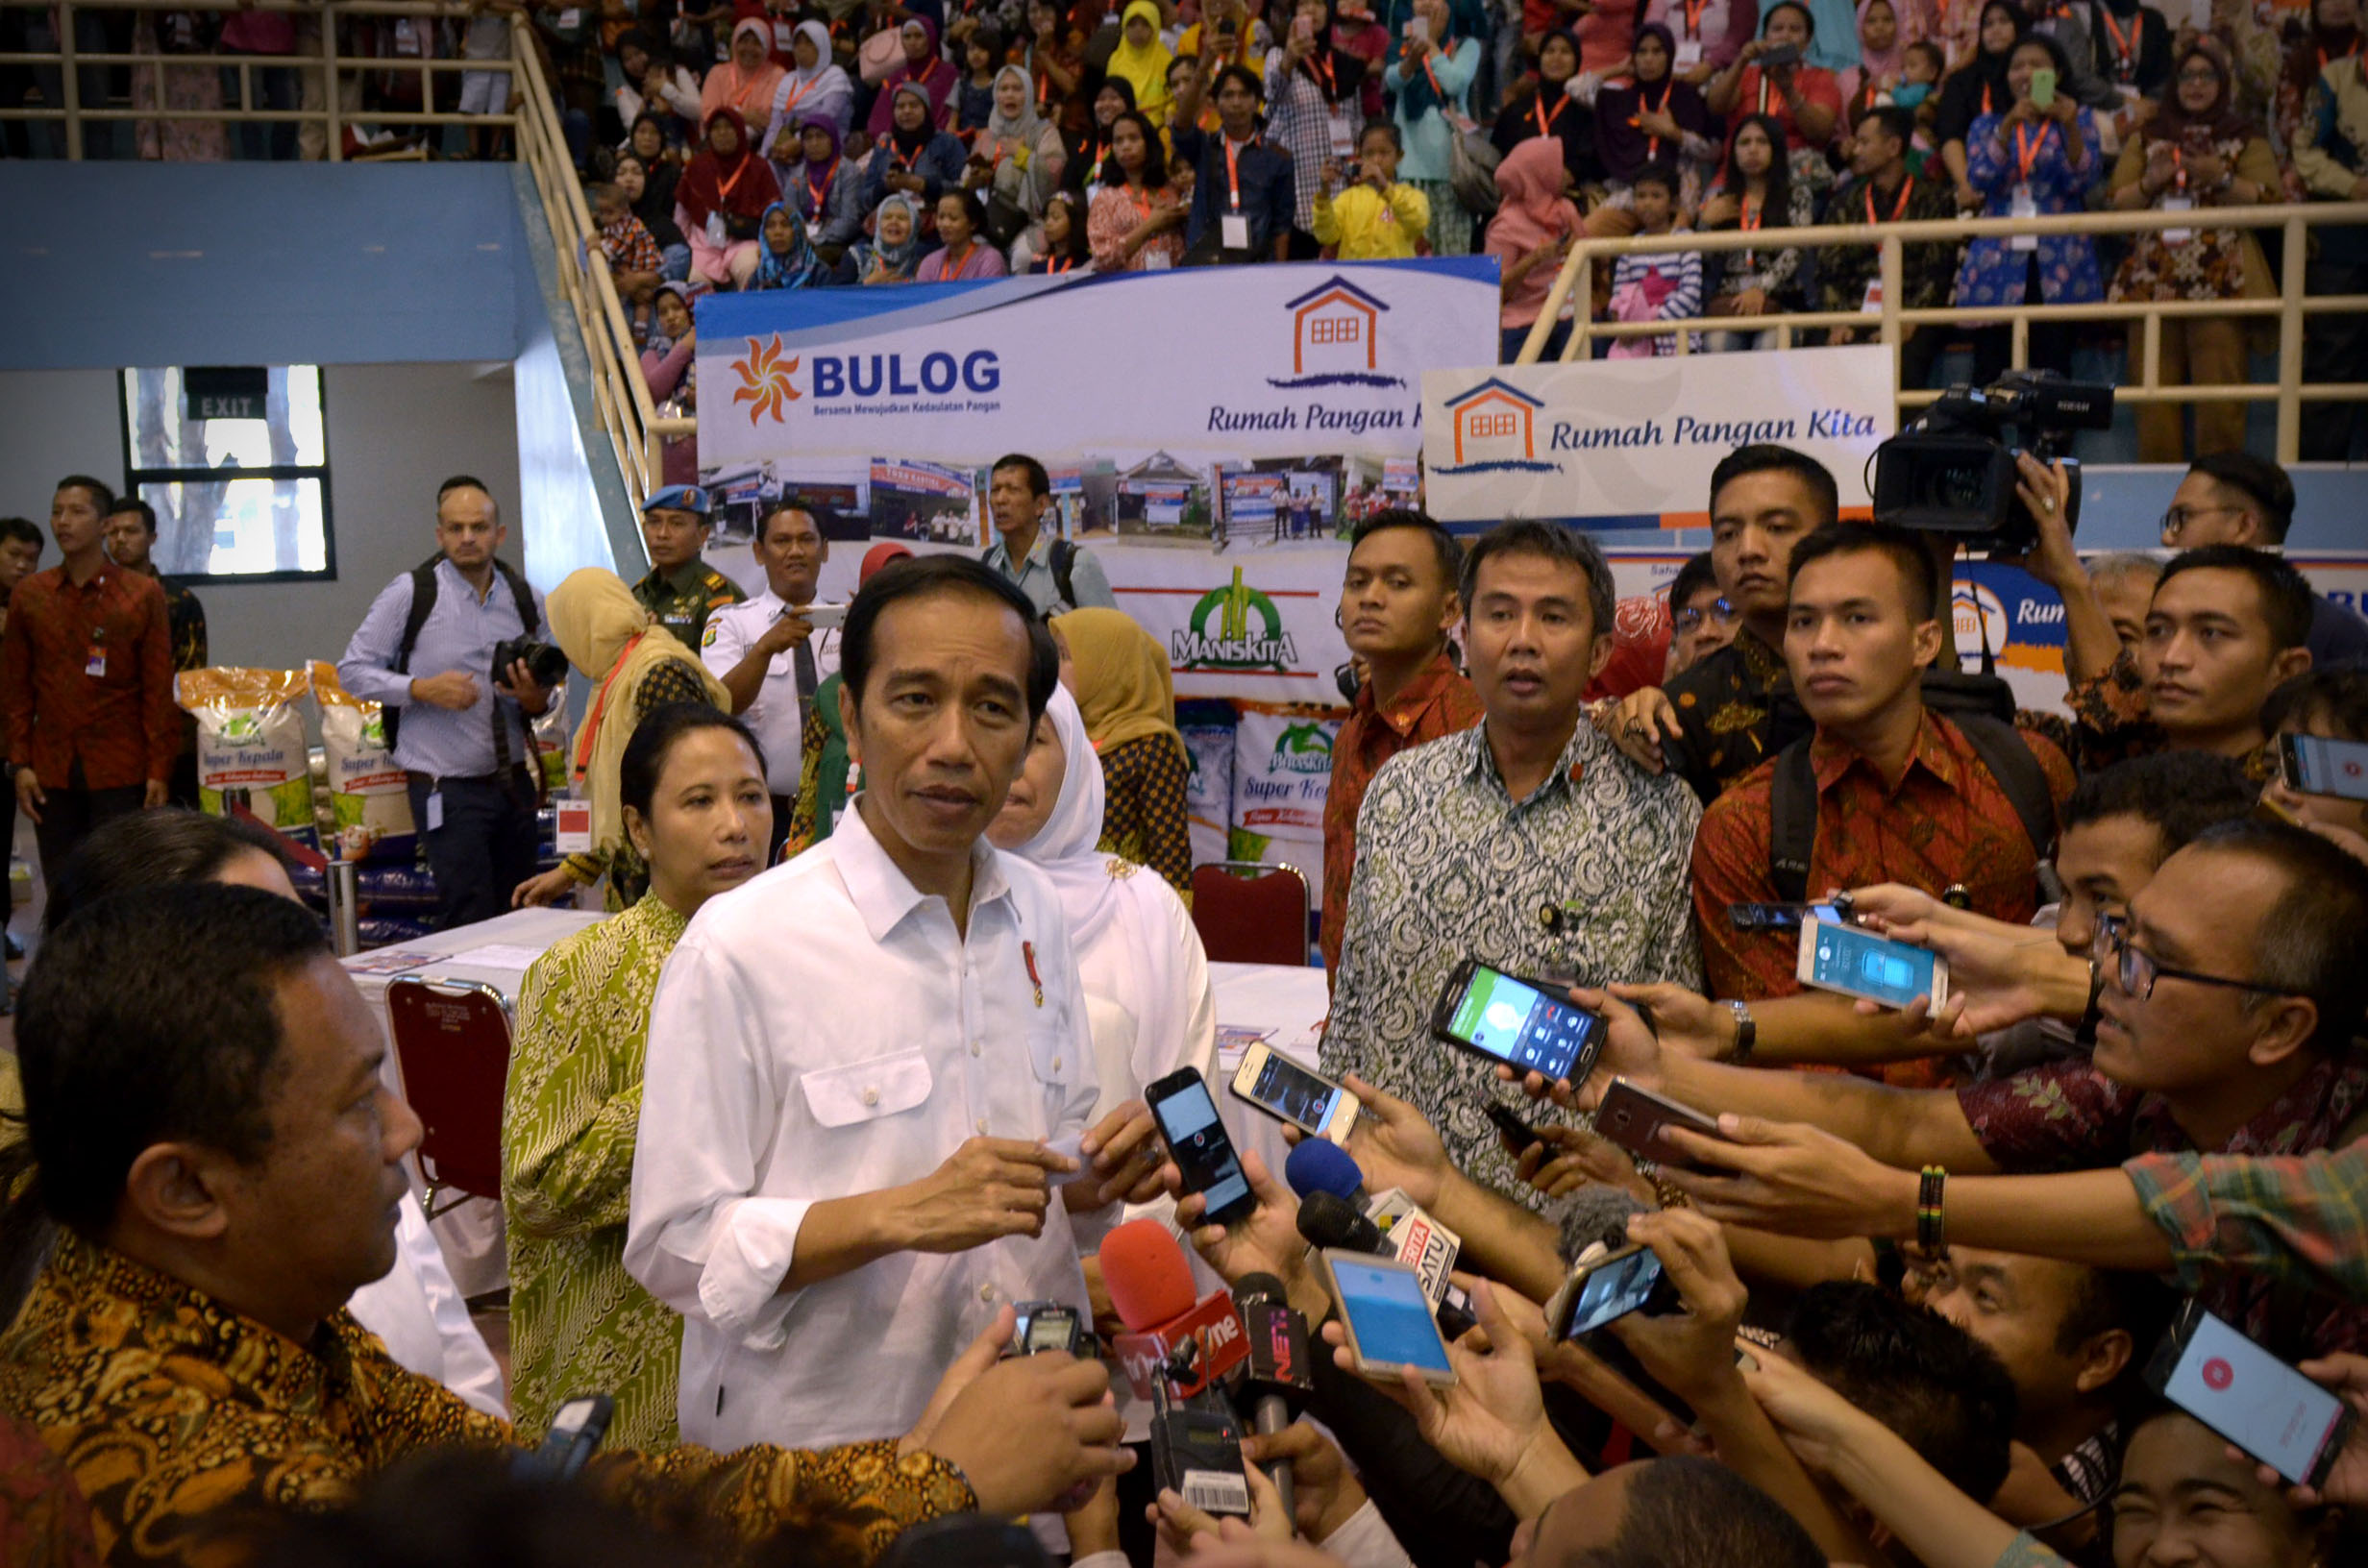 President Jokowi answers questions of journalists after the launching of BPNT, at the Popki Sports Hall, Cibubur, Jakarta, Thursday (23/2). (Photo: PR/Oji)